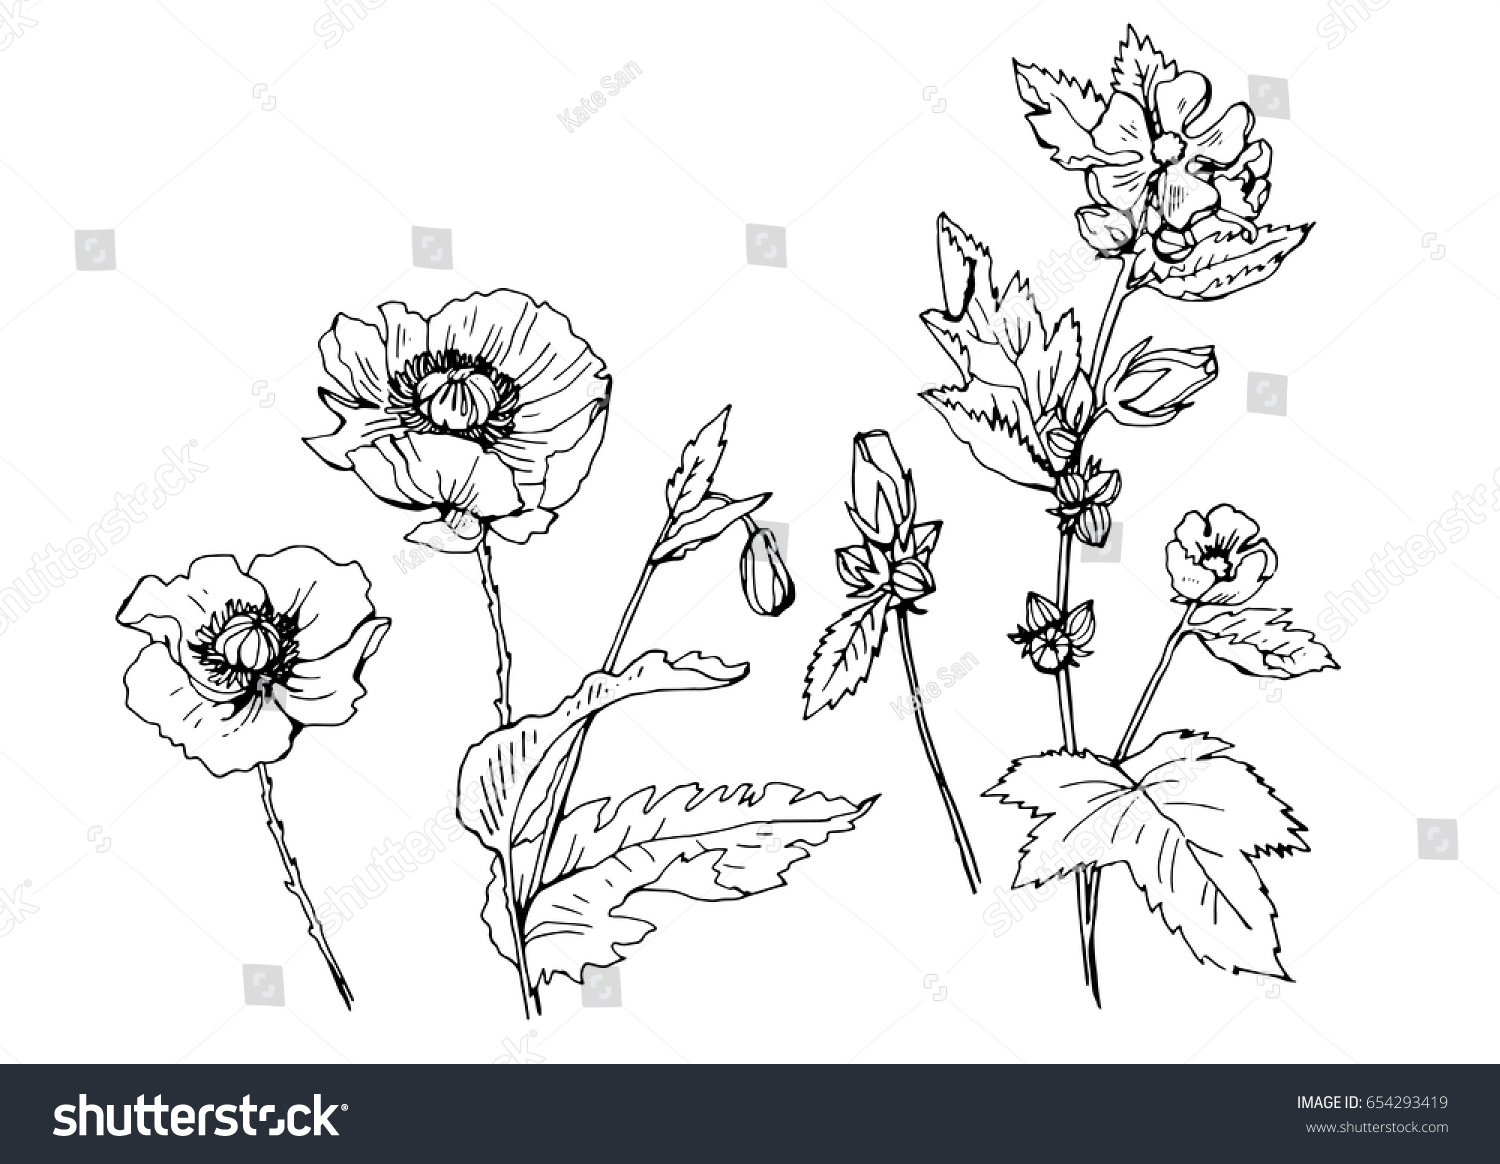 Vector Illustration Of Plants And Flowers Poppies Ez Canvas